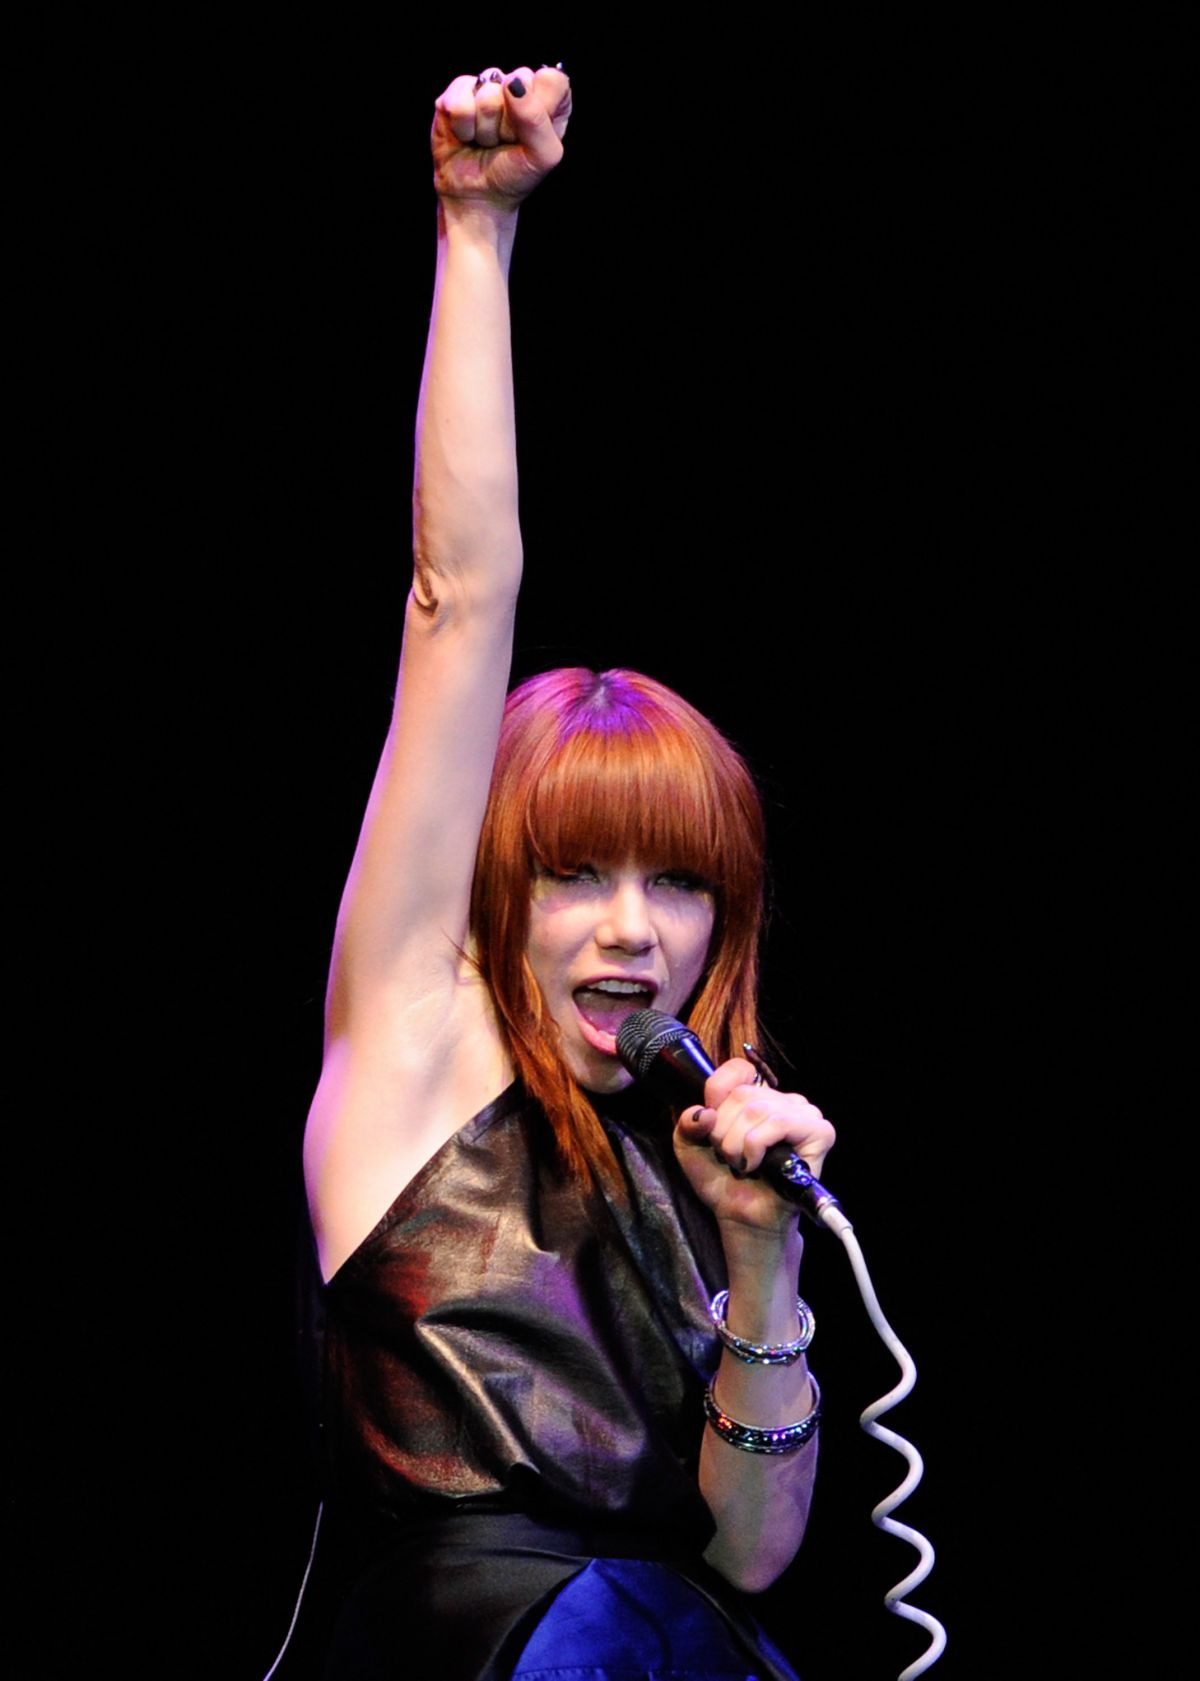 How Old Is Carly Rae Jepsen